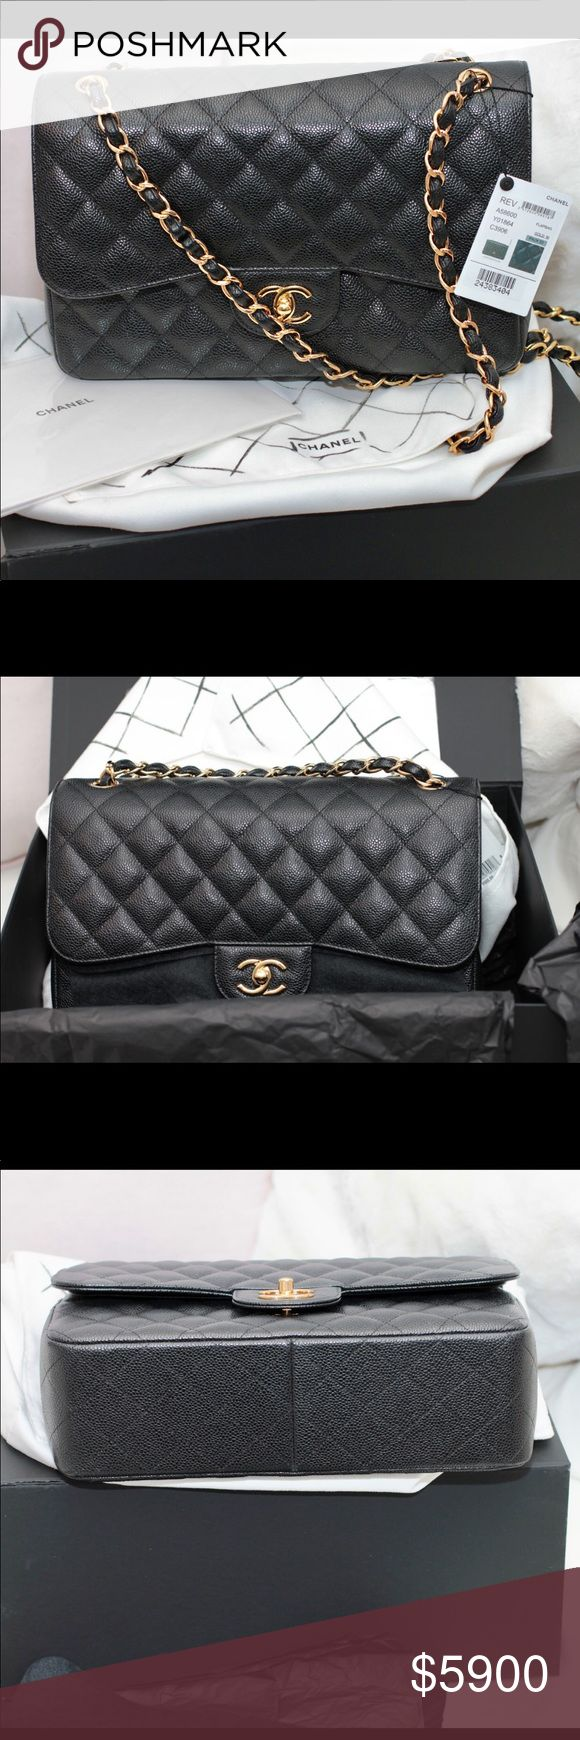 Chanel Classic Jumbo Caviar leather Black with Gold Hardware CHANEL Bags Shoulder Bags